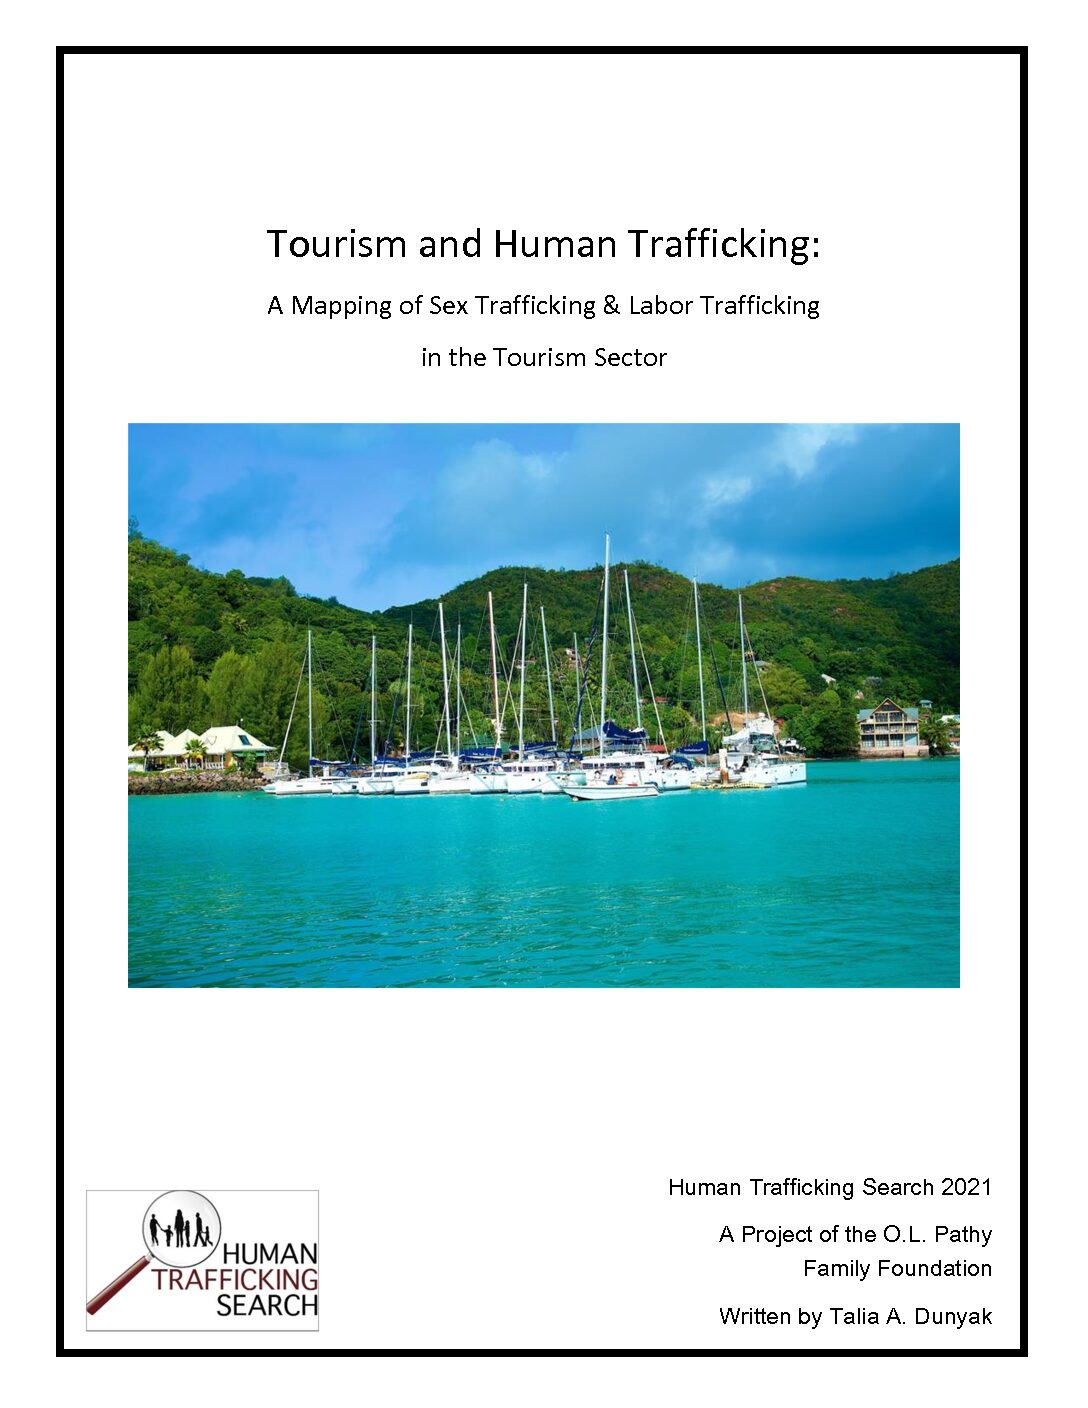 Tourism and Human Trafficking:A Mapping of Sex Trafficking & Labor Trafficking in the Tourism Sector